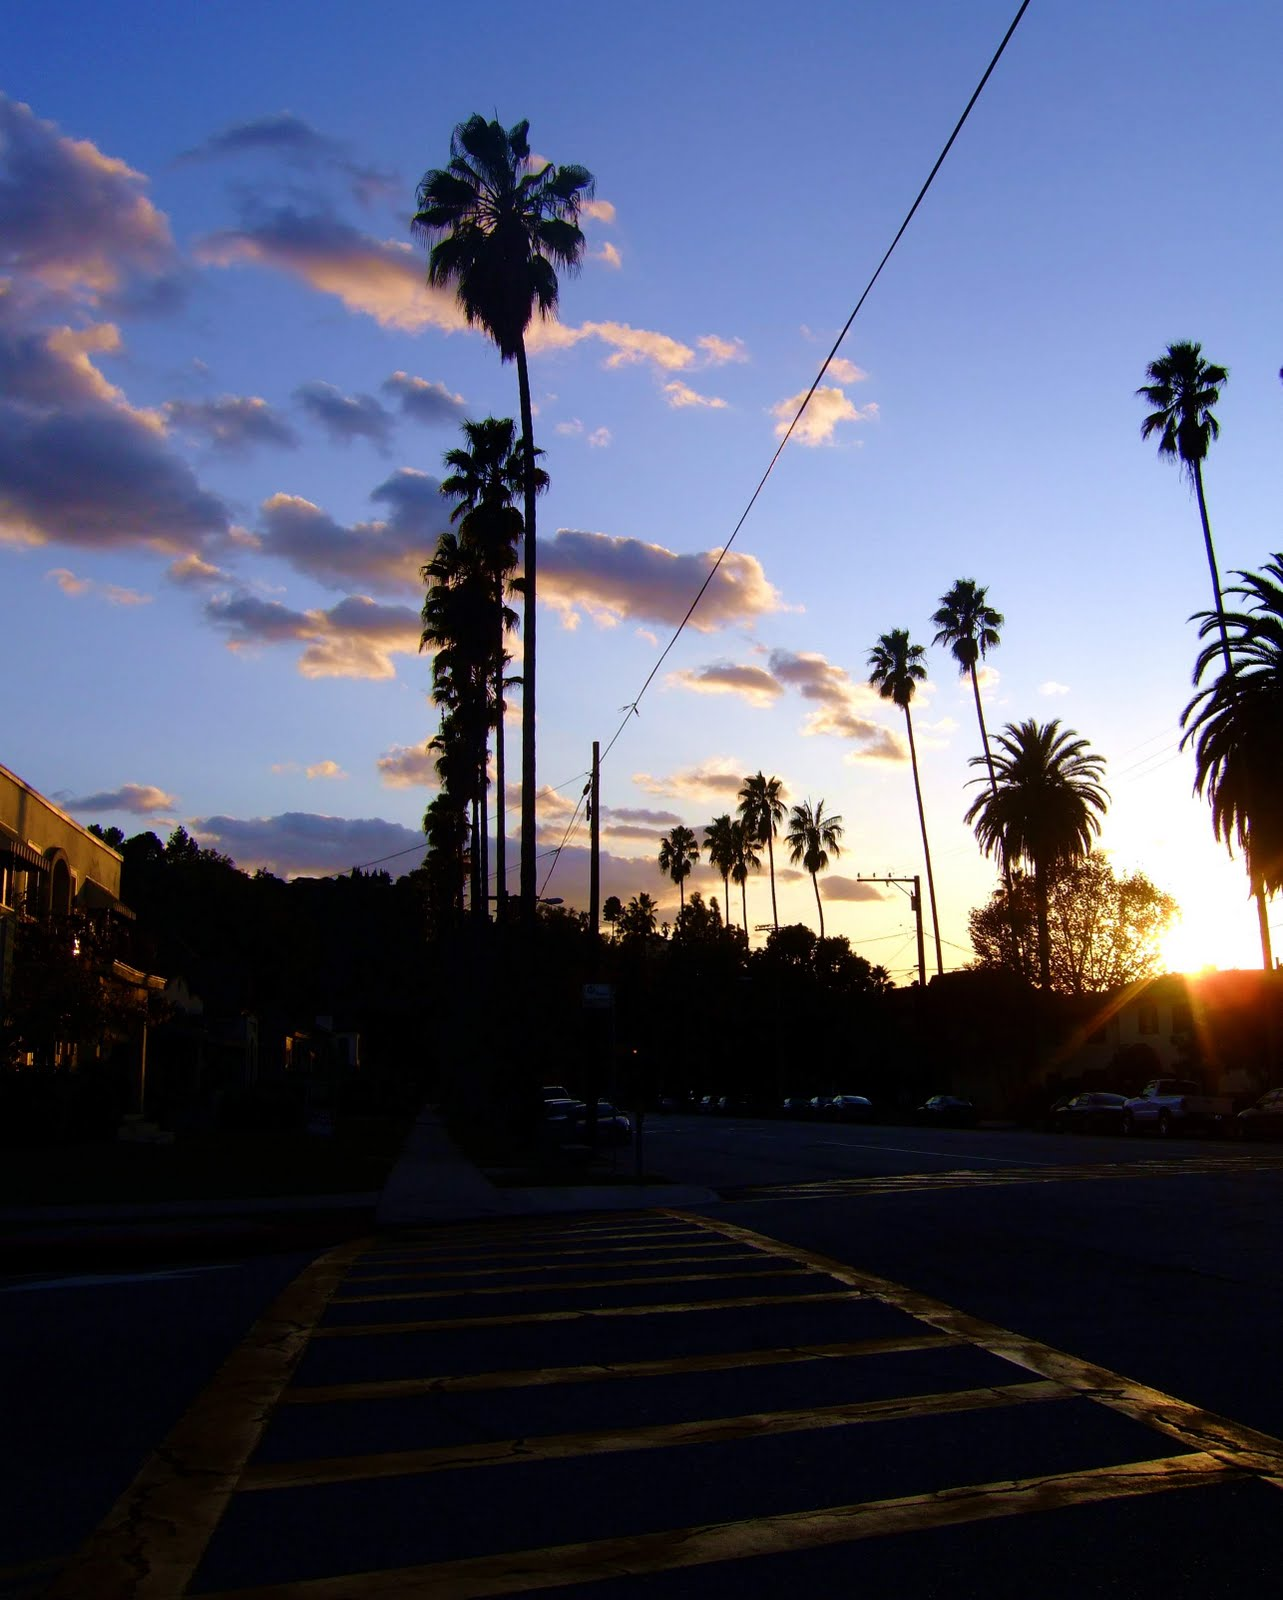 Sunset Crosswalk With Palms And